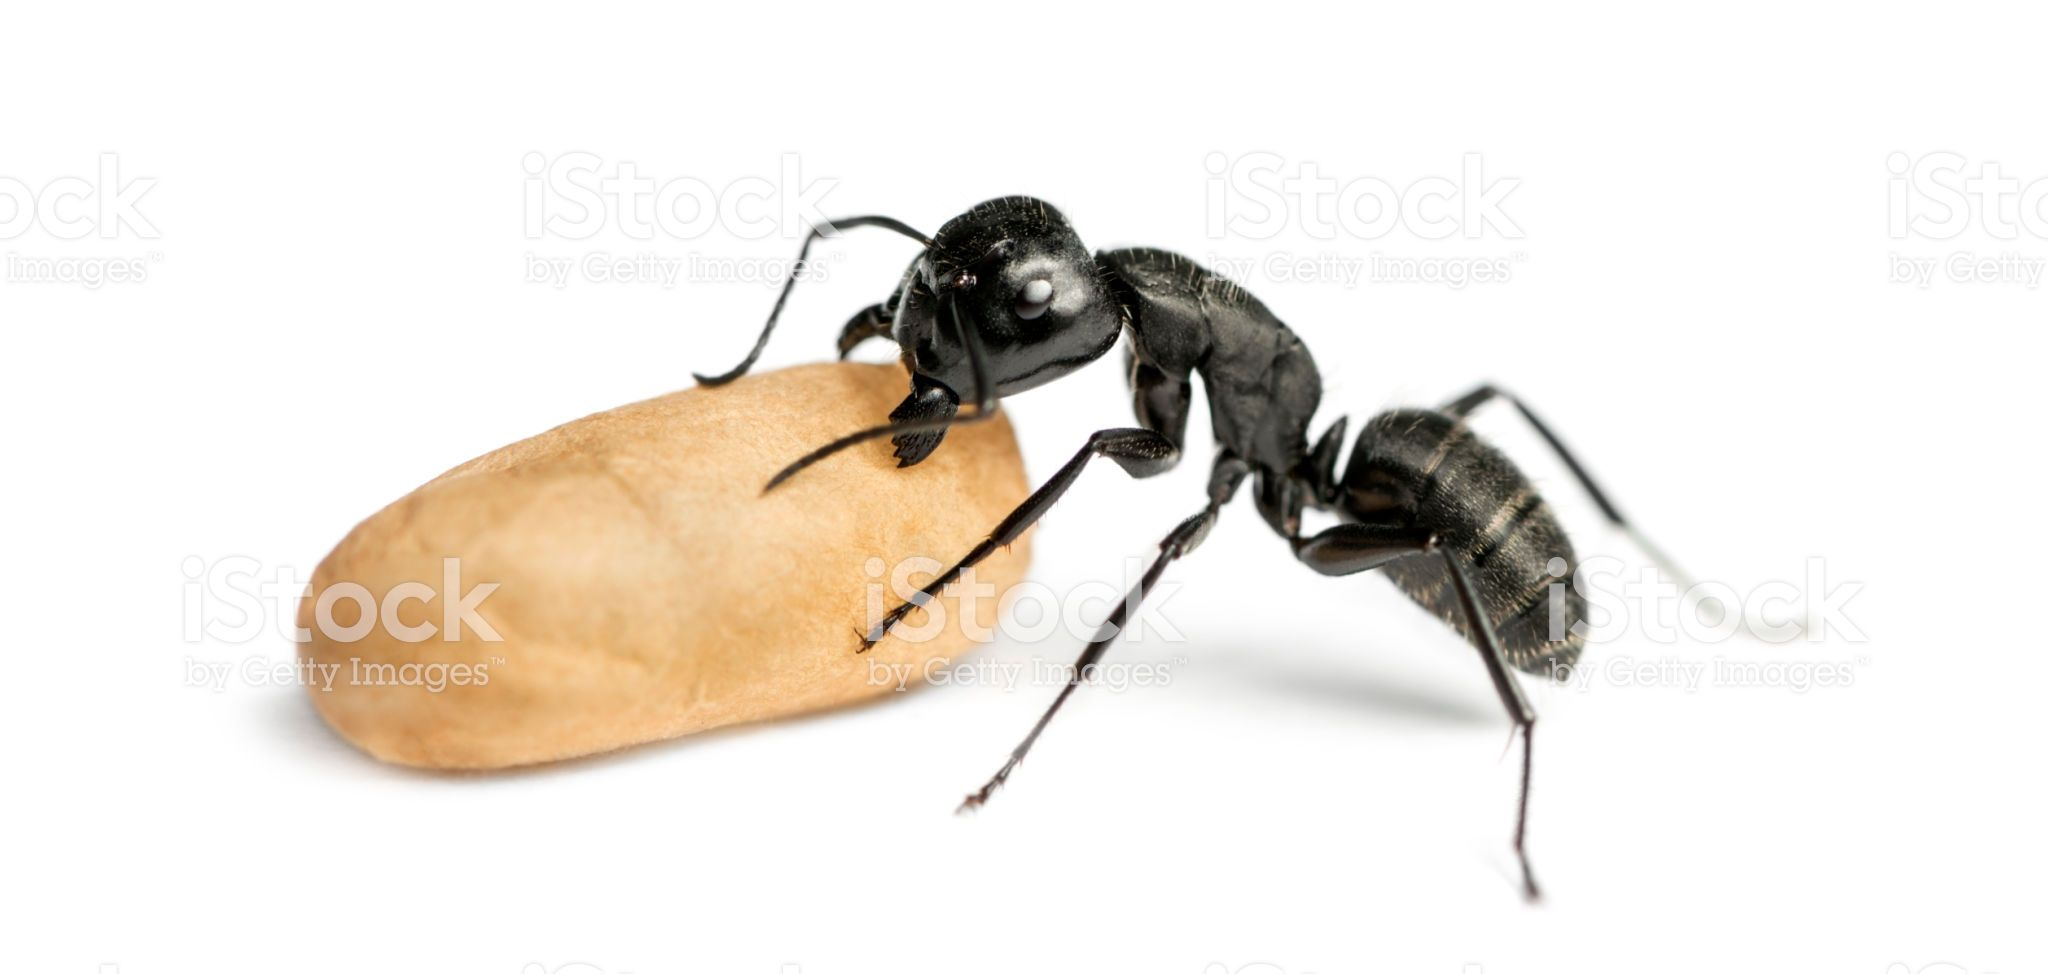 Carpenter Ant Camponotus Vagus Carrying An Egg Ants Insects